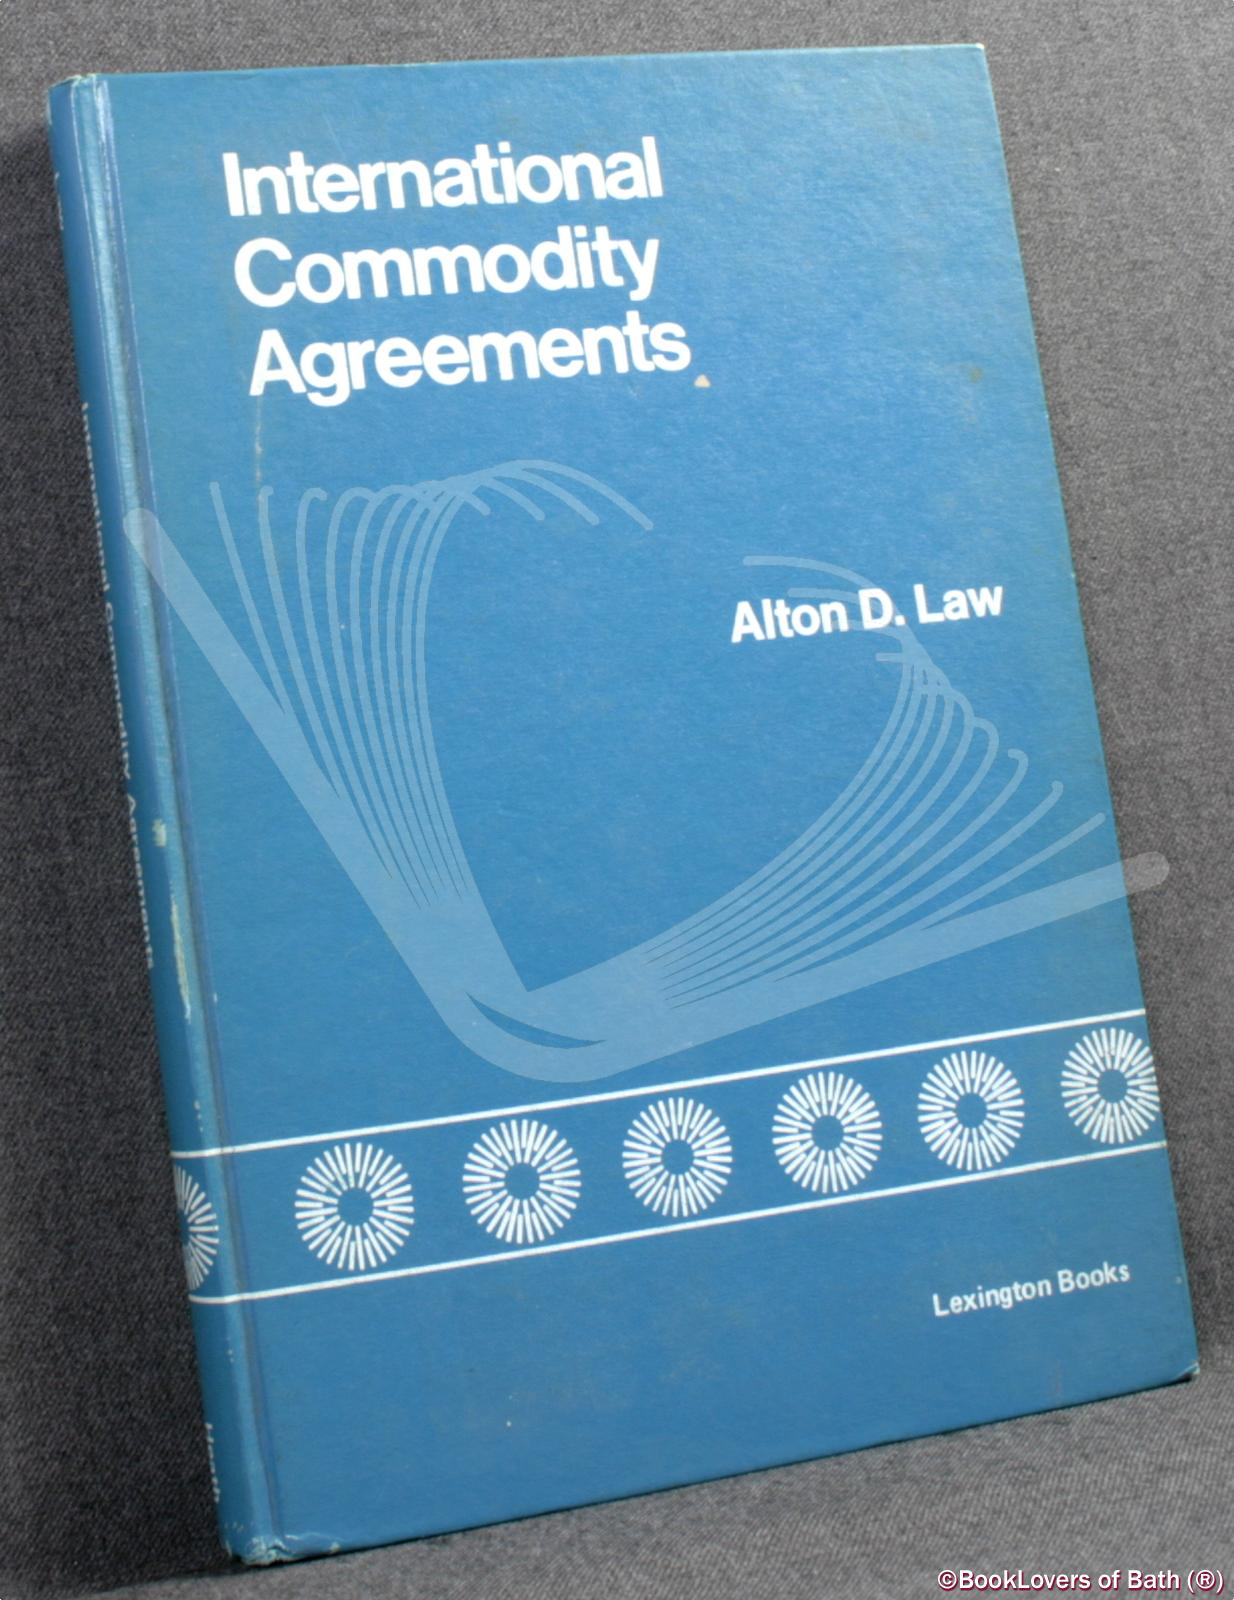 International Commodity Agreements - Alton D. Law